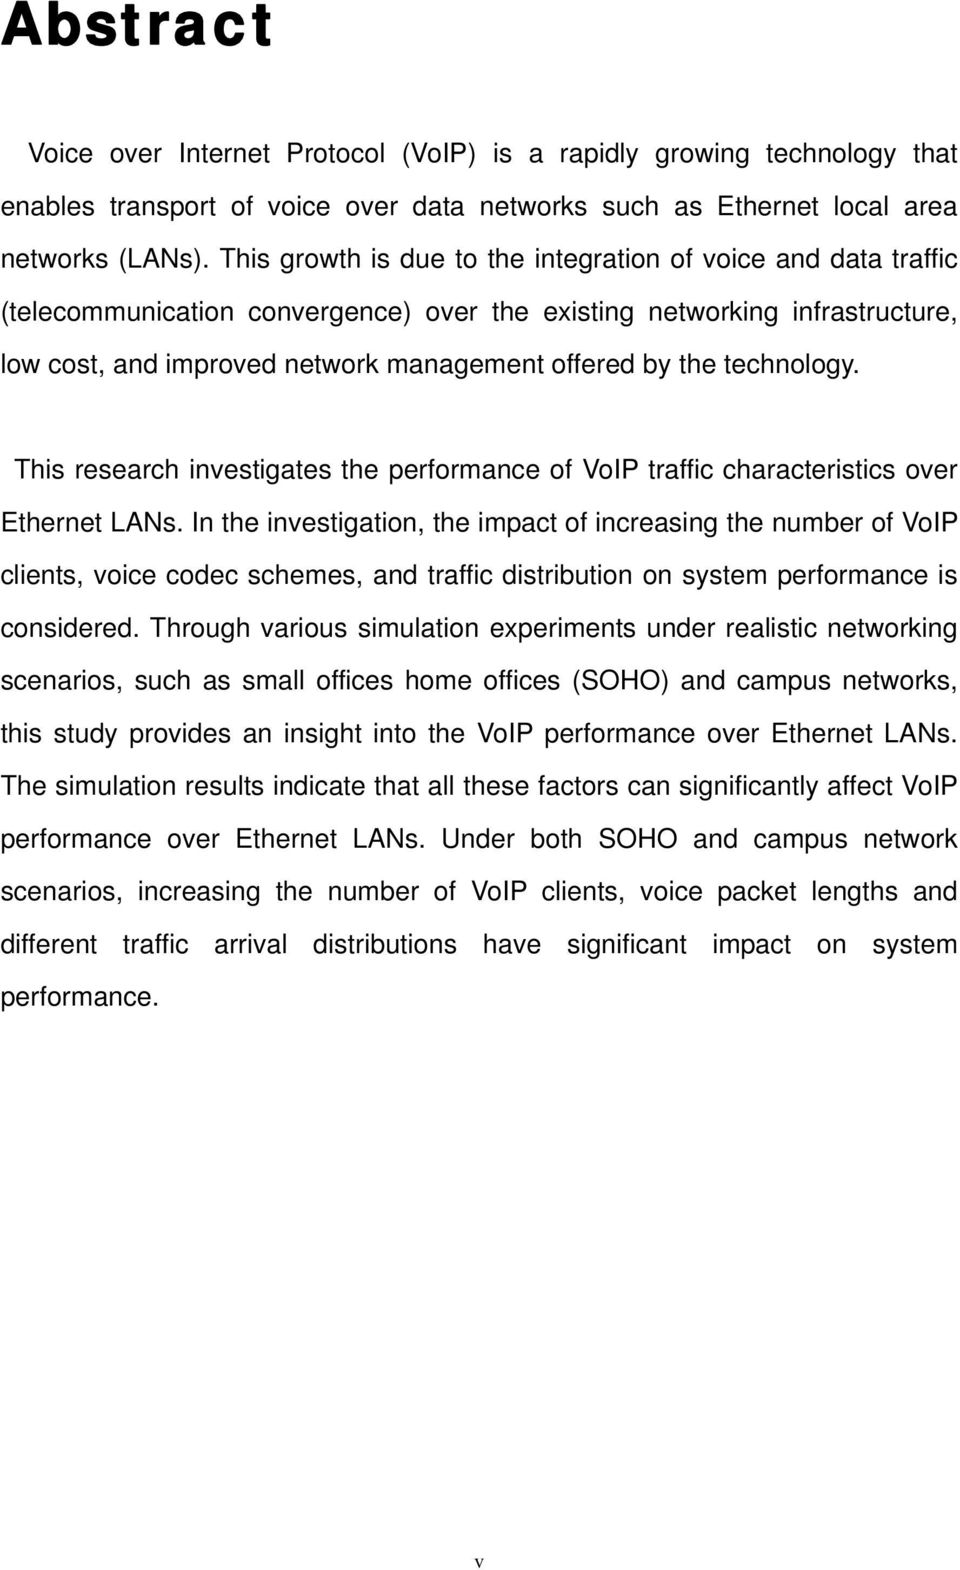 technology. This research investigates the performance of VoIP traffic characteristics over Ethernet LANs.